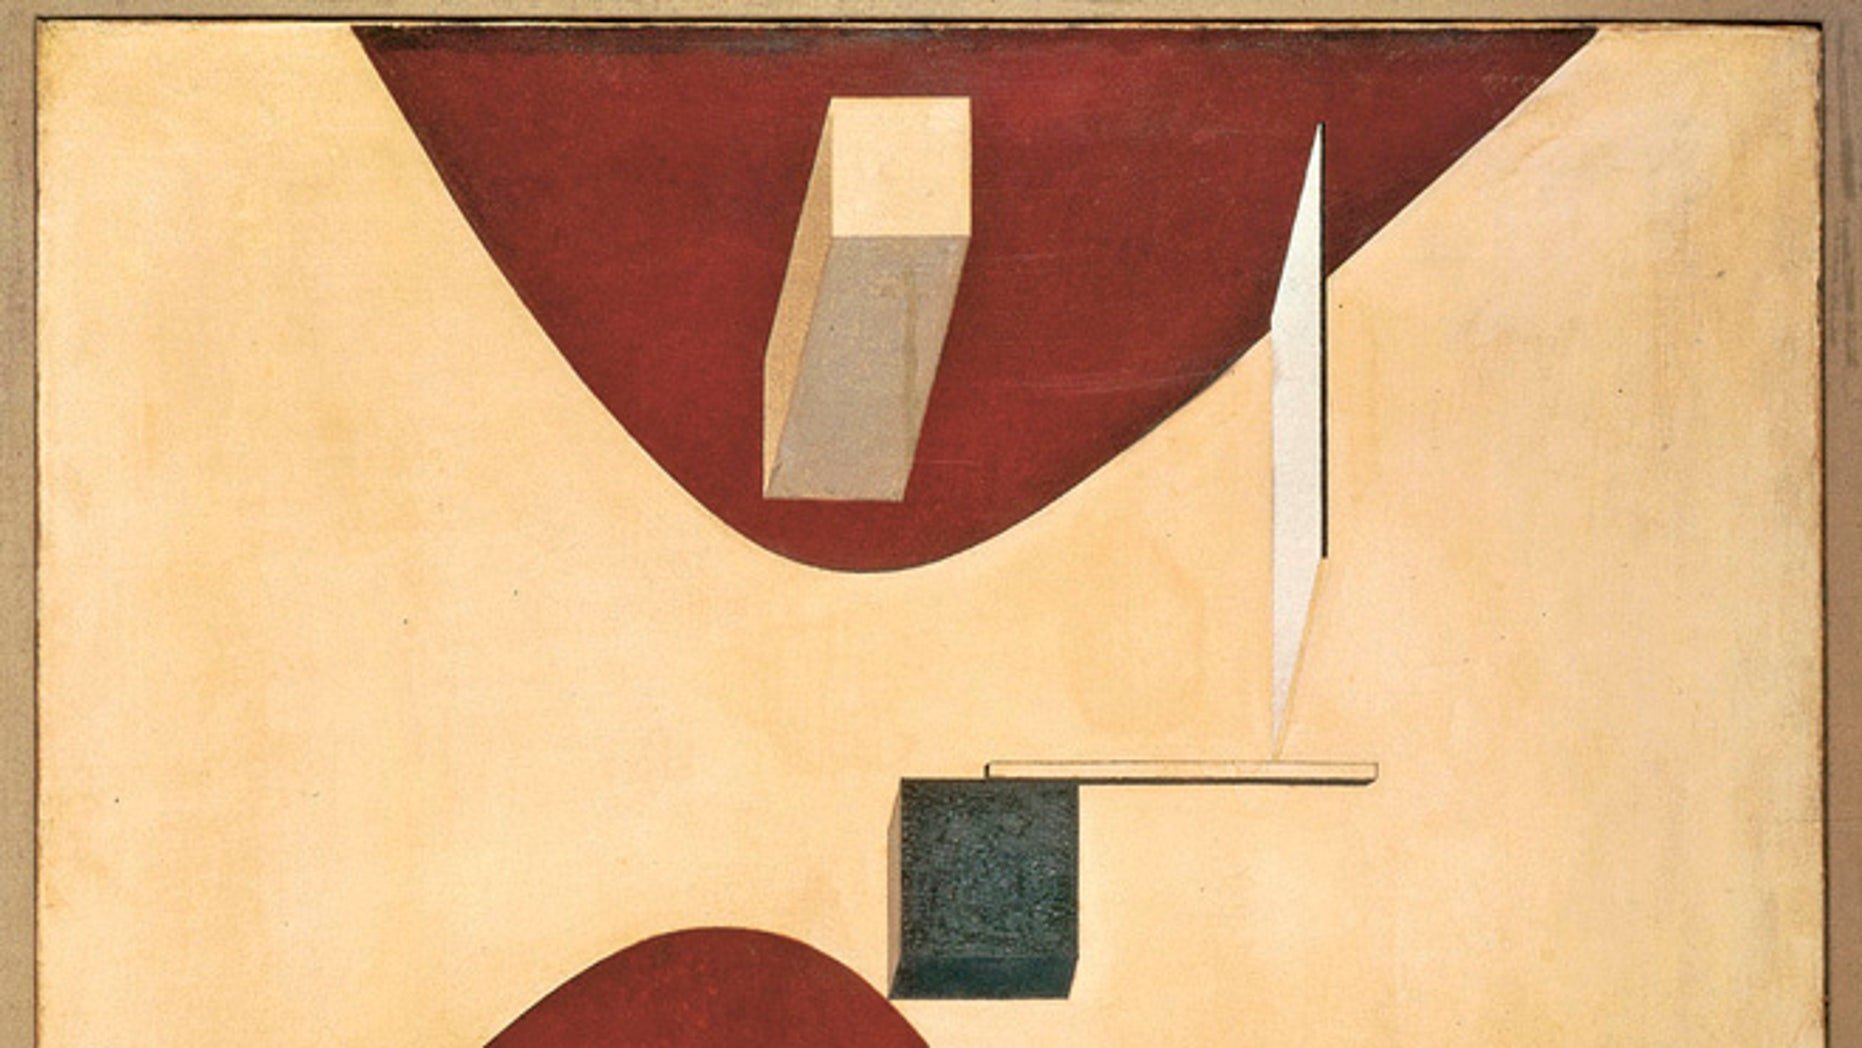 Oct. 29, 2013: This undated photo provided by Van Abbemuseum in Eindhoven shows the 1919 painting Proun P23, no. 6 by El Lissitzky. A major investigation into whether art hanging in Dutch museums may have once been Nazi loot has yielded a large result: 139 suspect works, including ones by masters like Matisse, Klee and Kandinsky, according to The Associated Press.